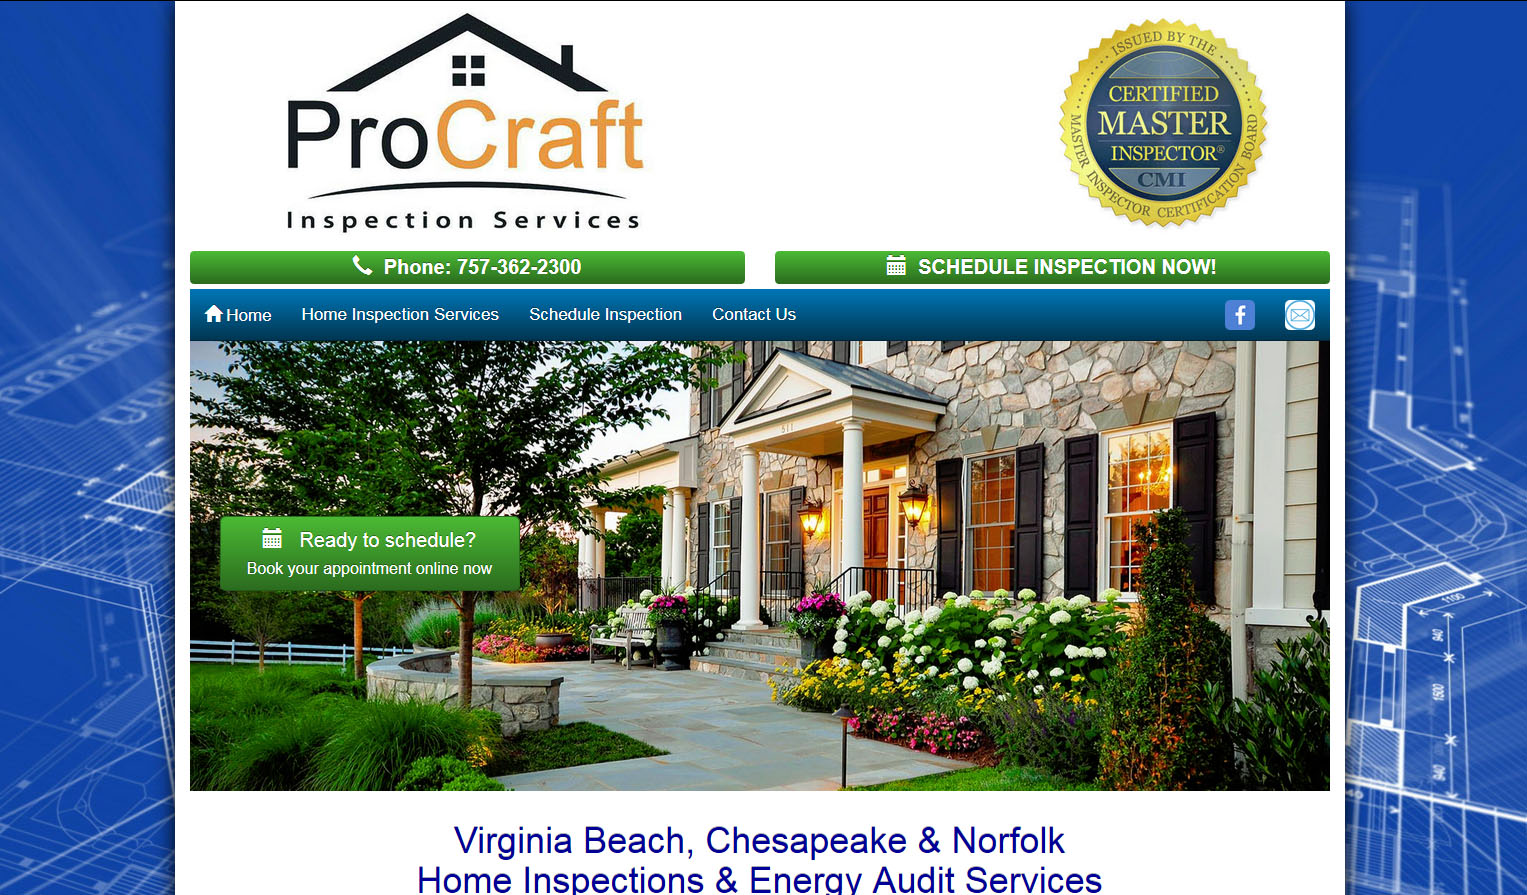 Procraft Inspection Services